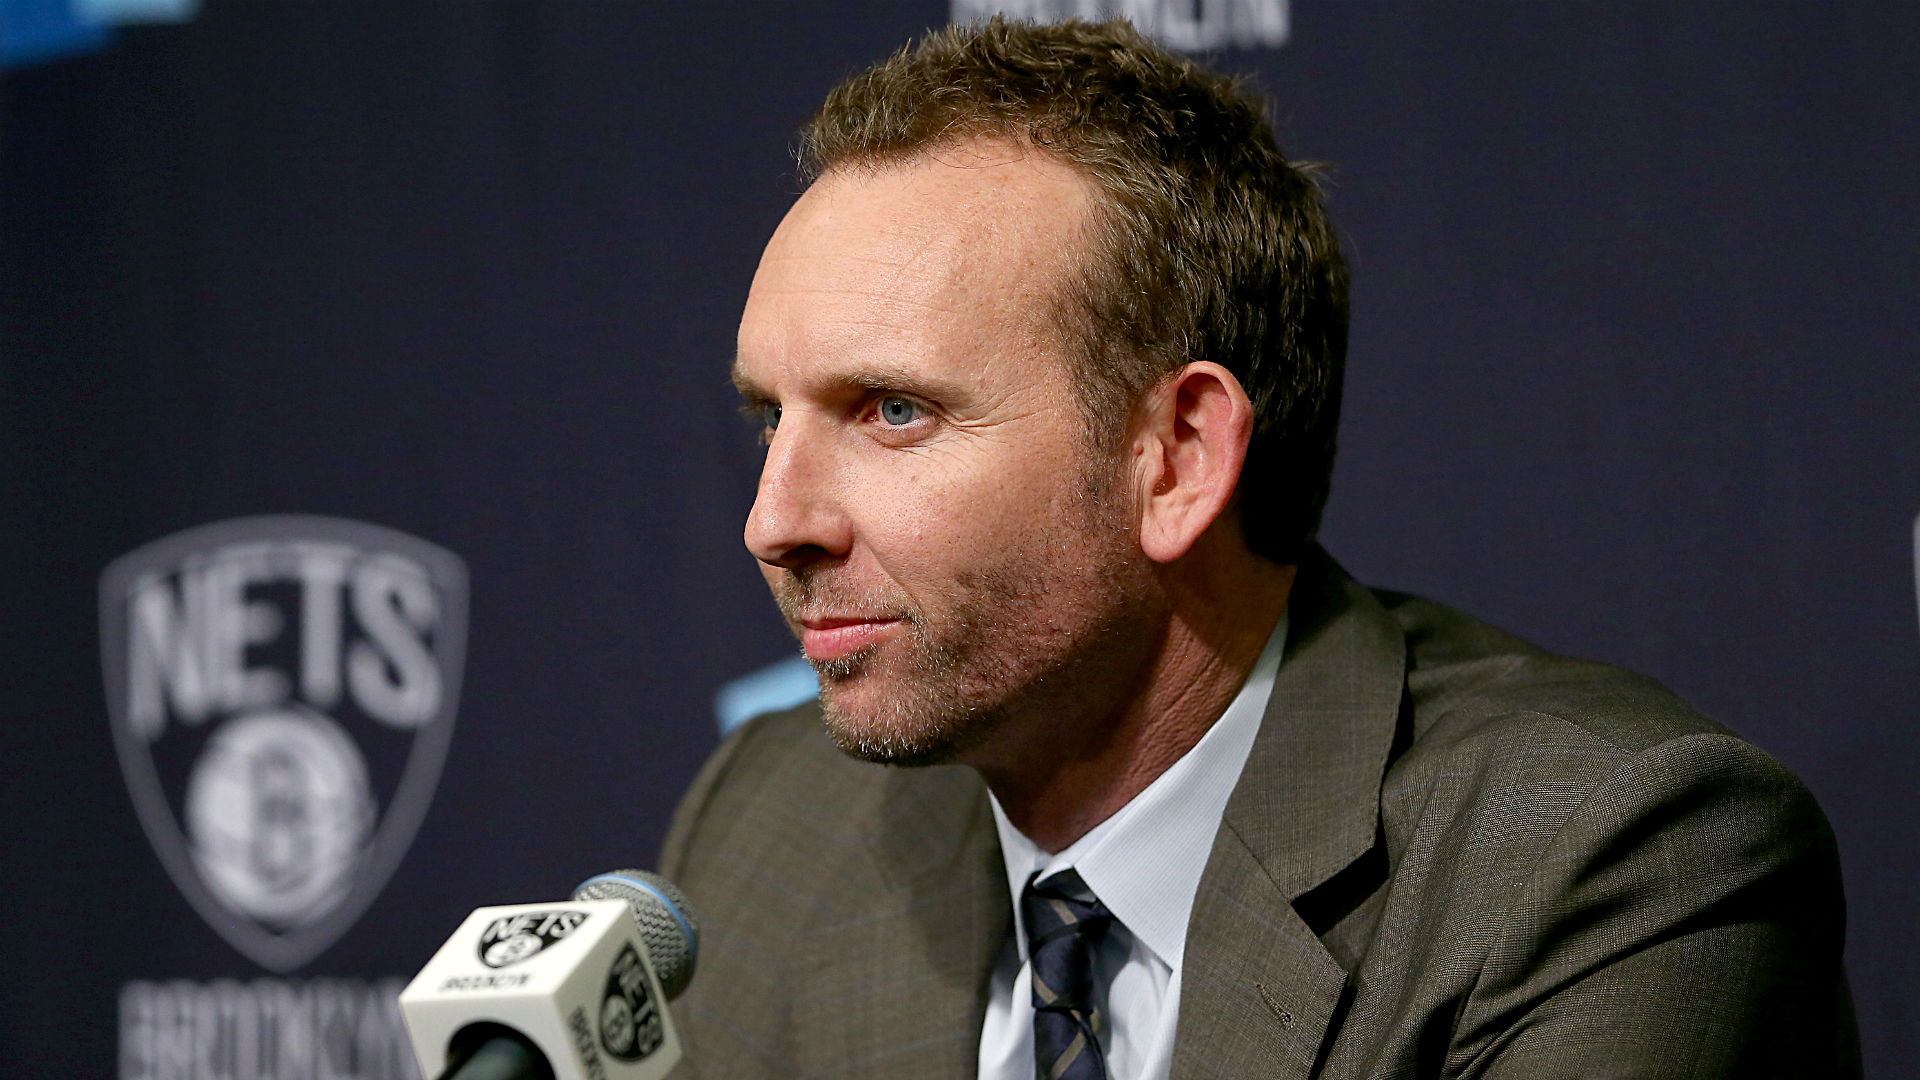 Nets GM Sean Marks suspended, fined after entering referee locker room